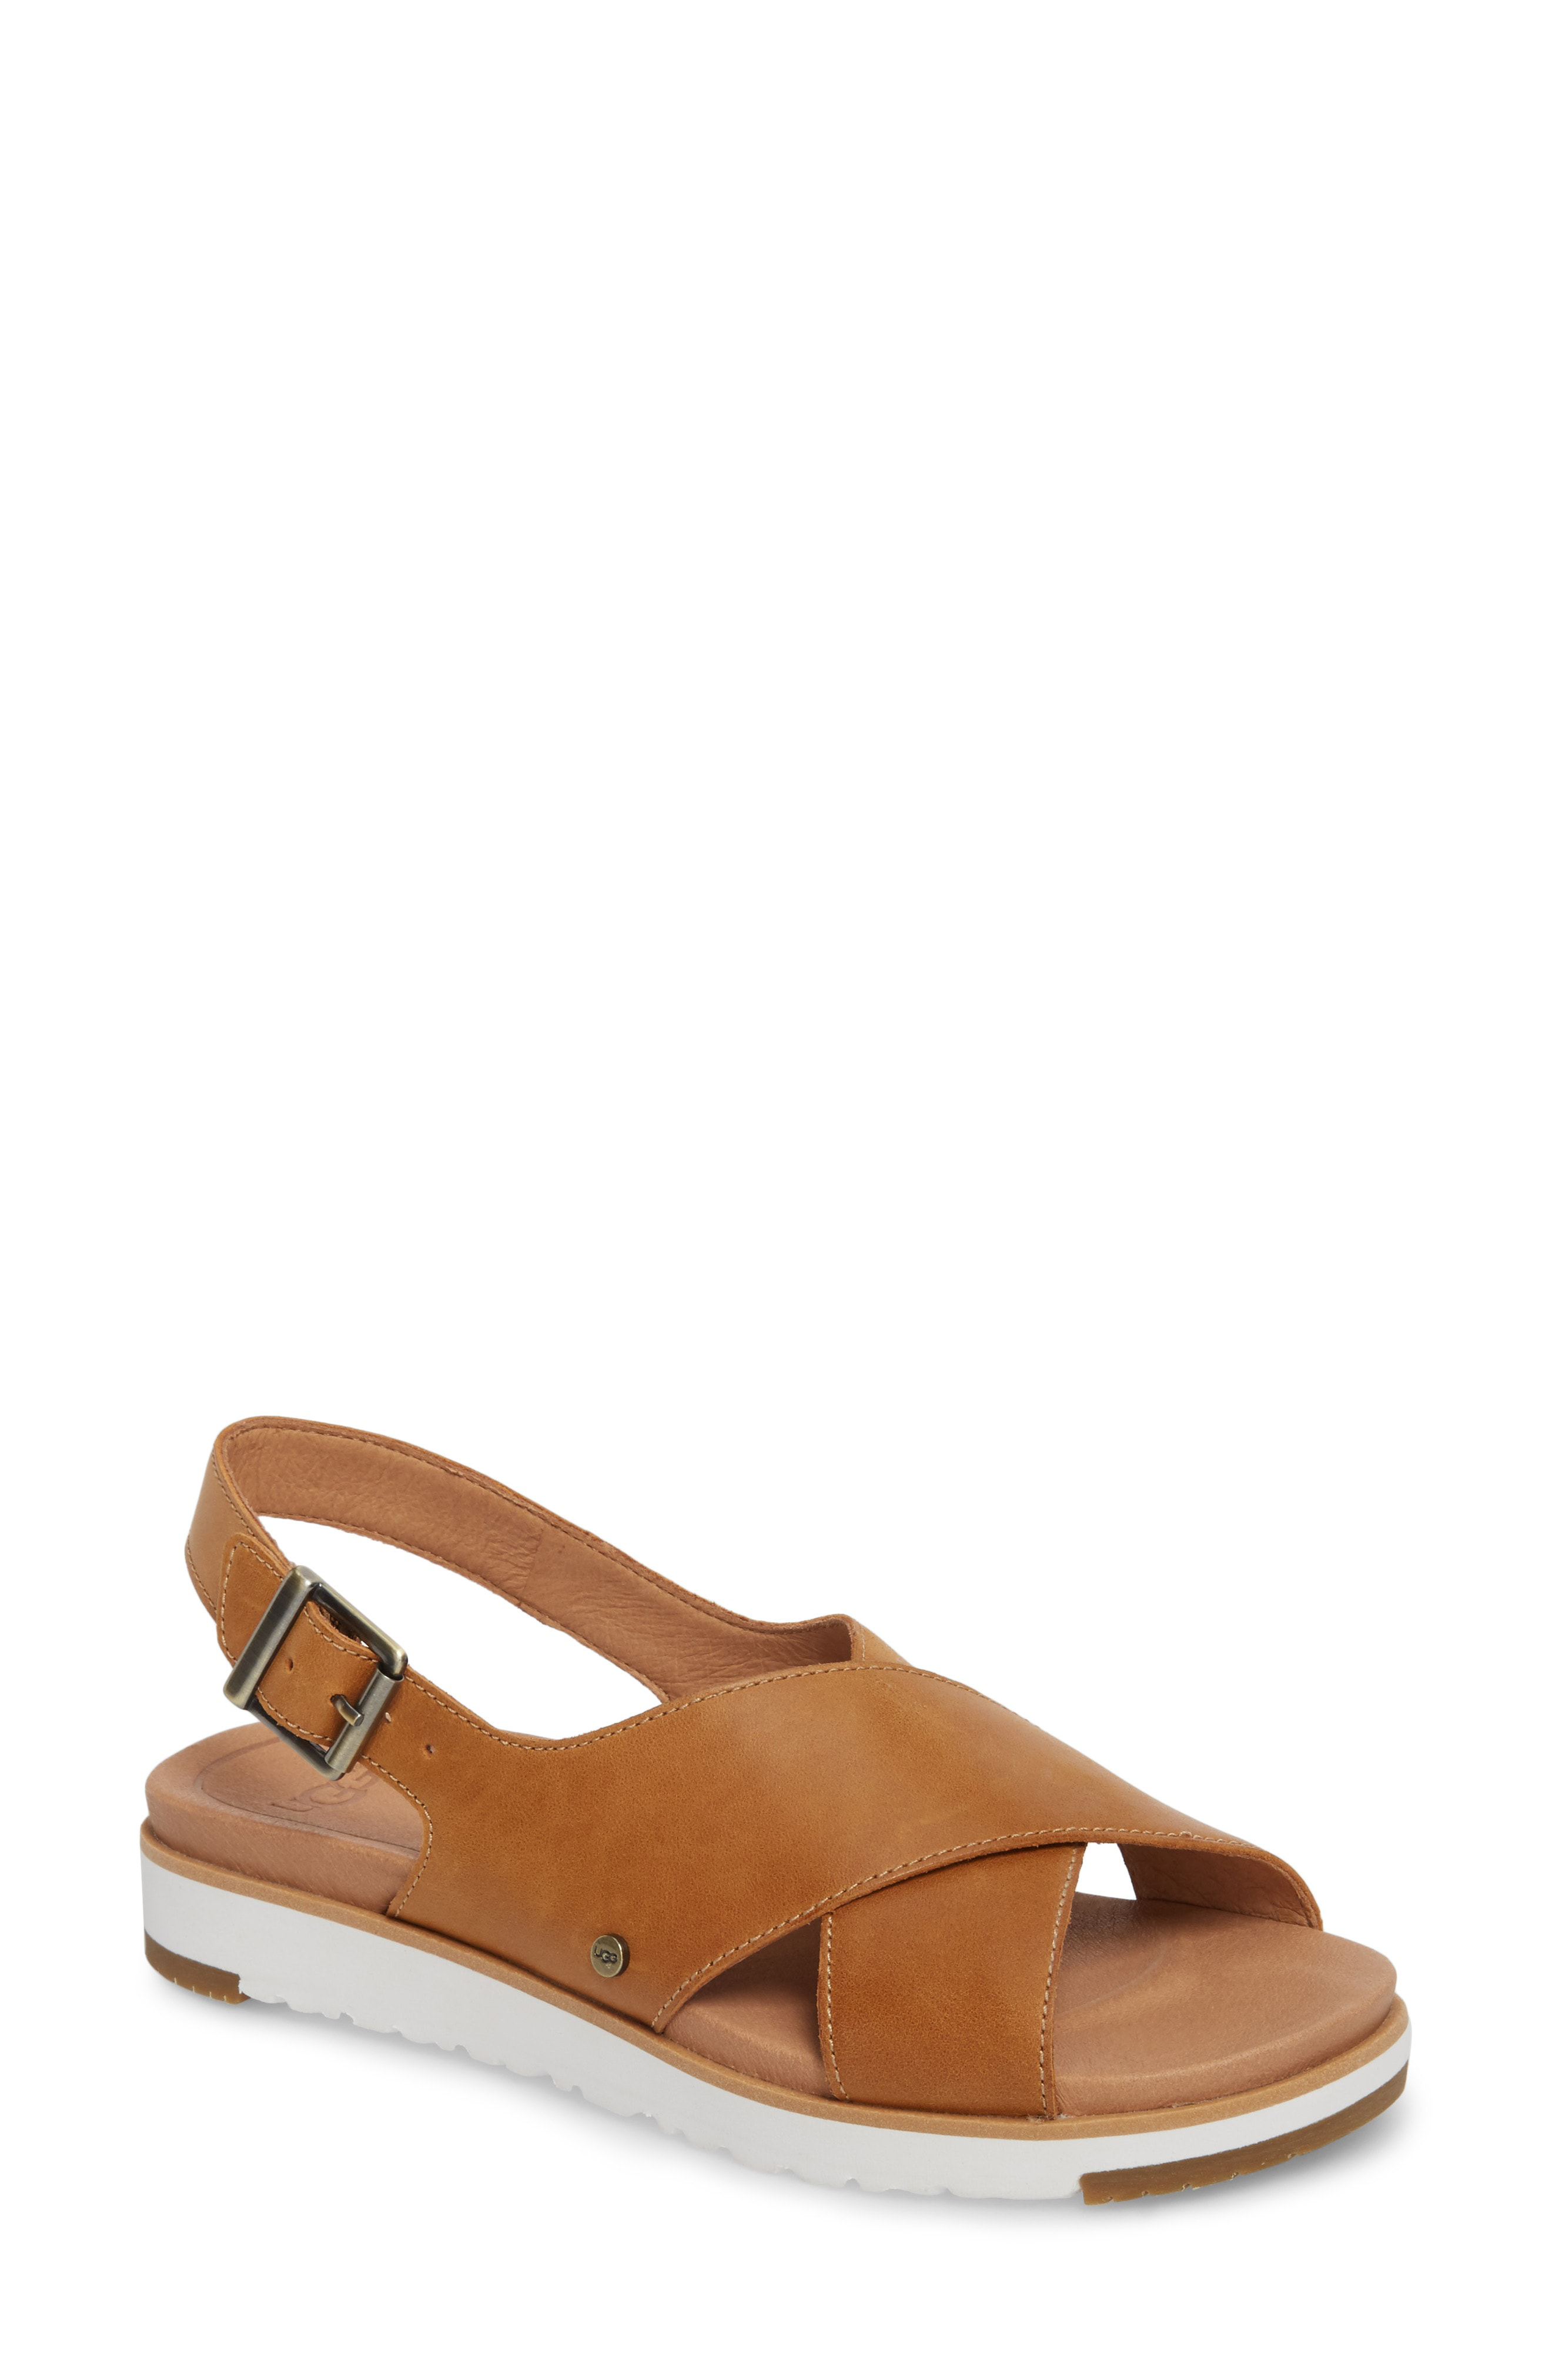 441d1746367 Ugg Kamile Sandal in Almond Leather